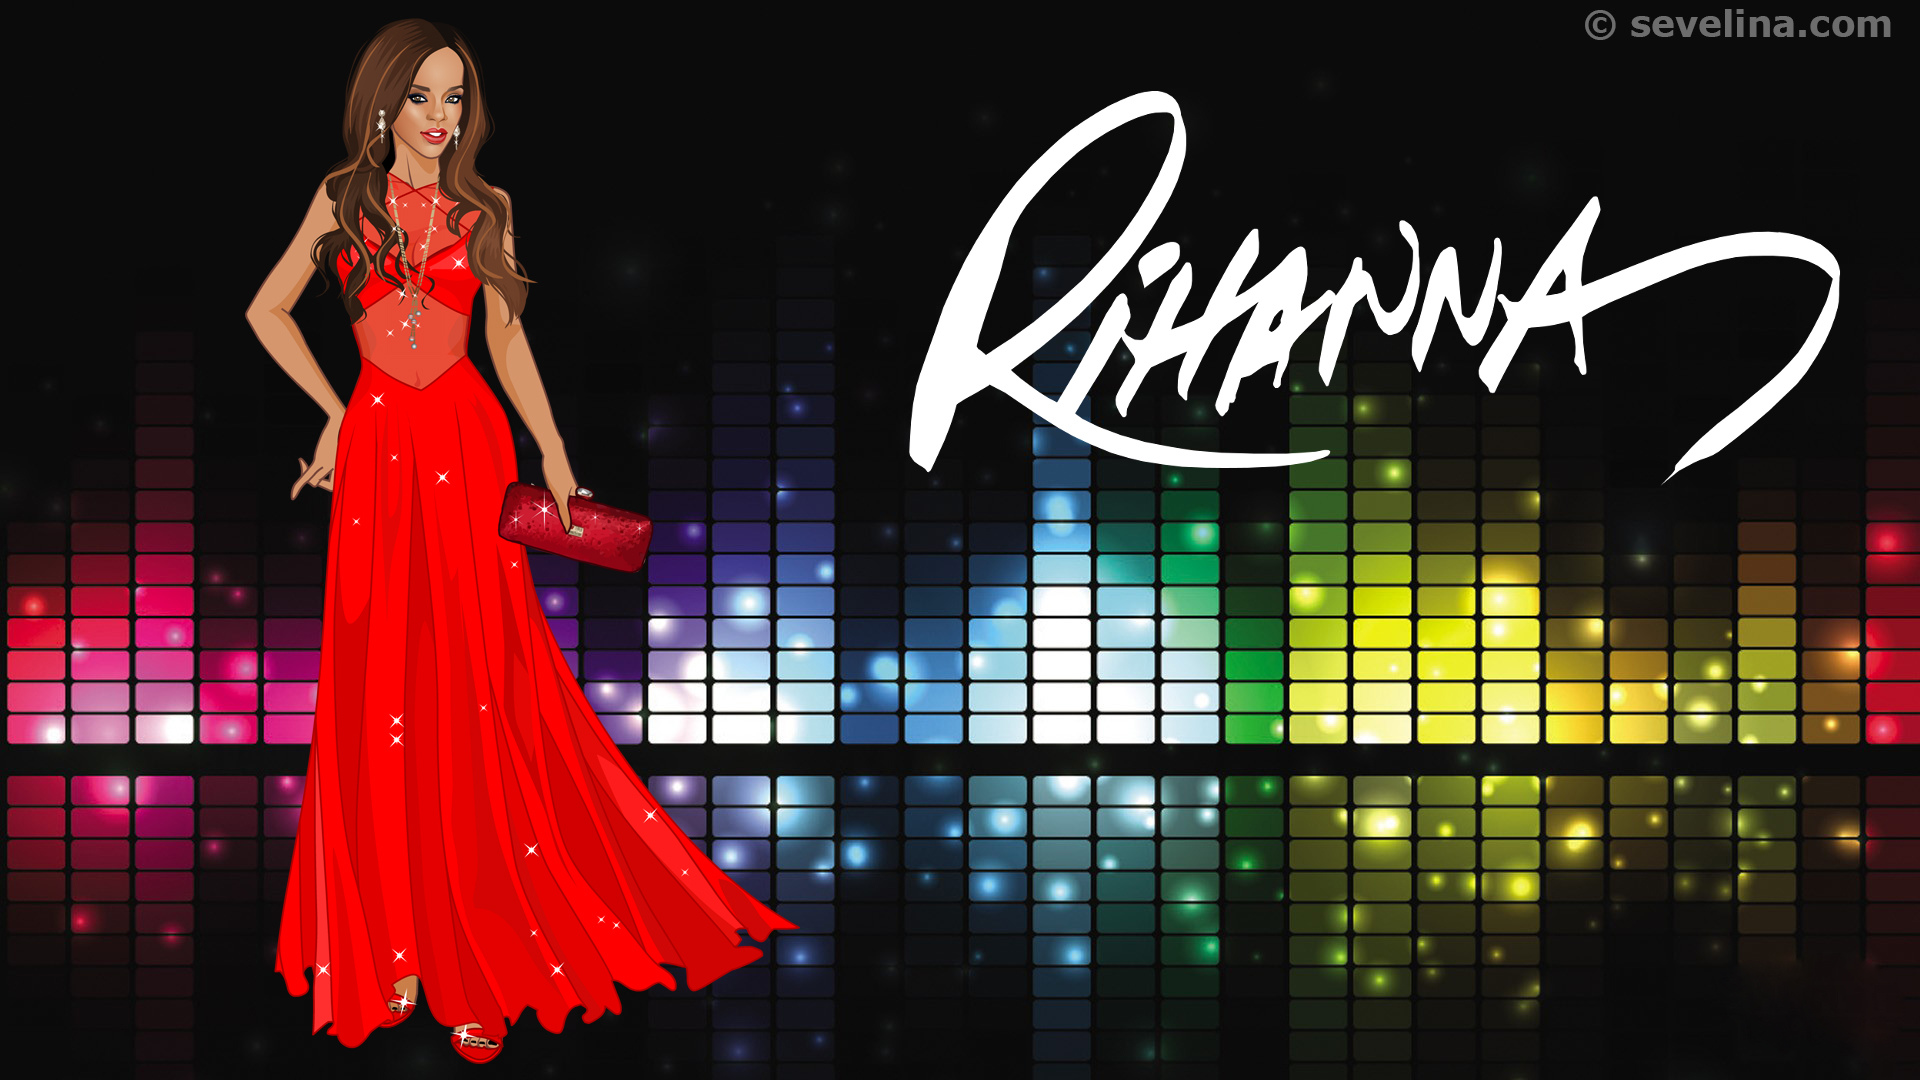 rihanna-wallpapers-2014-full HD